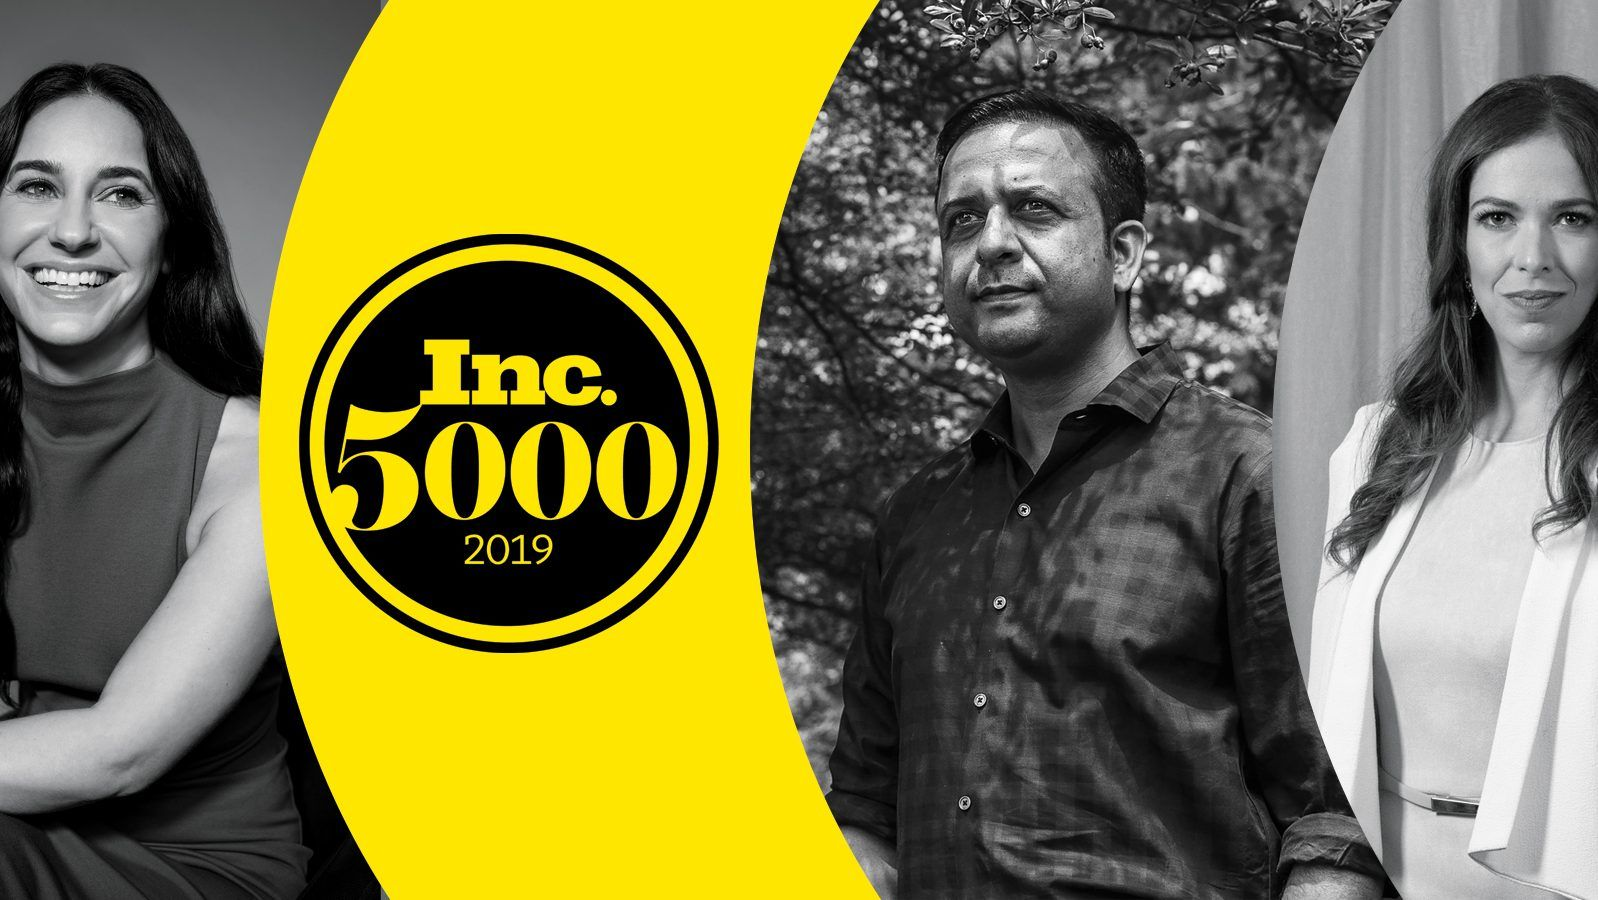 EcoSystems Ranked No. 75 on 2019 Inc. 5000 List of Fastest Growing Companies